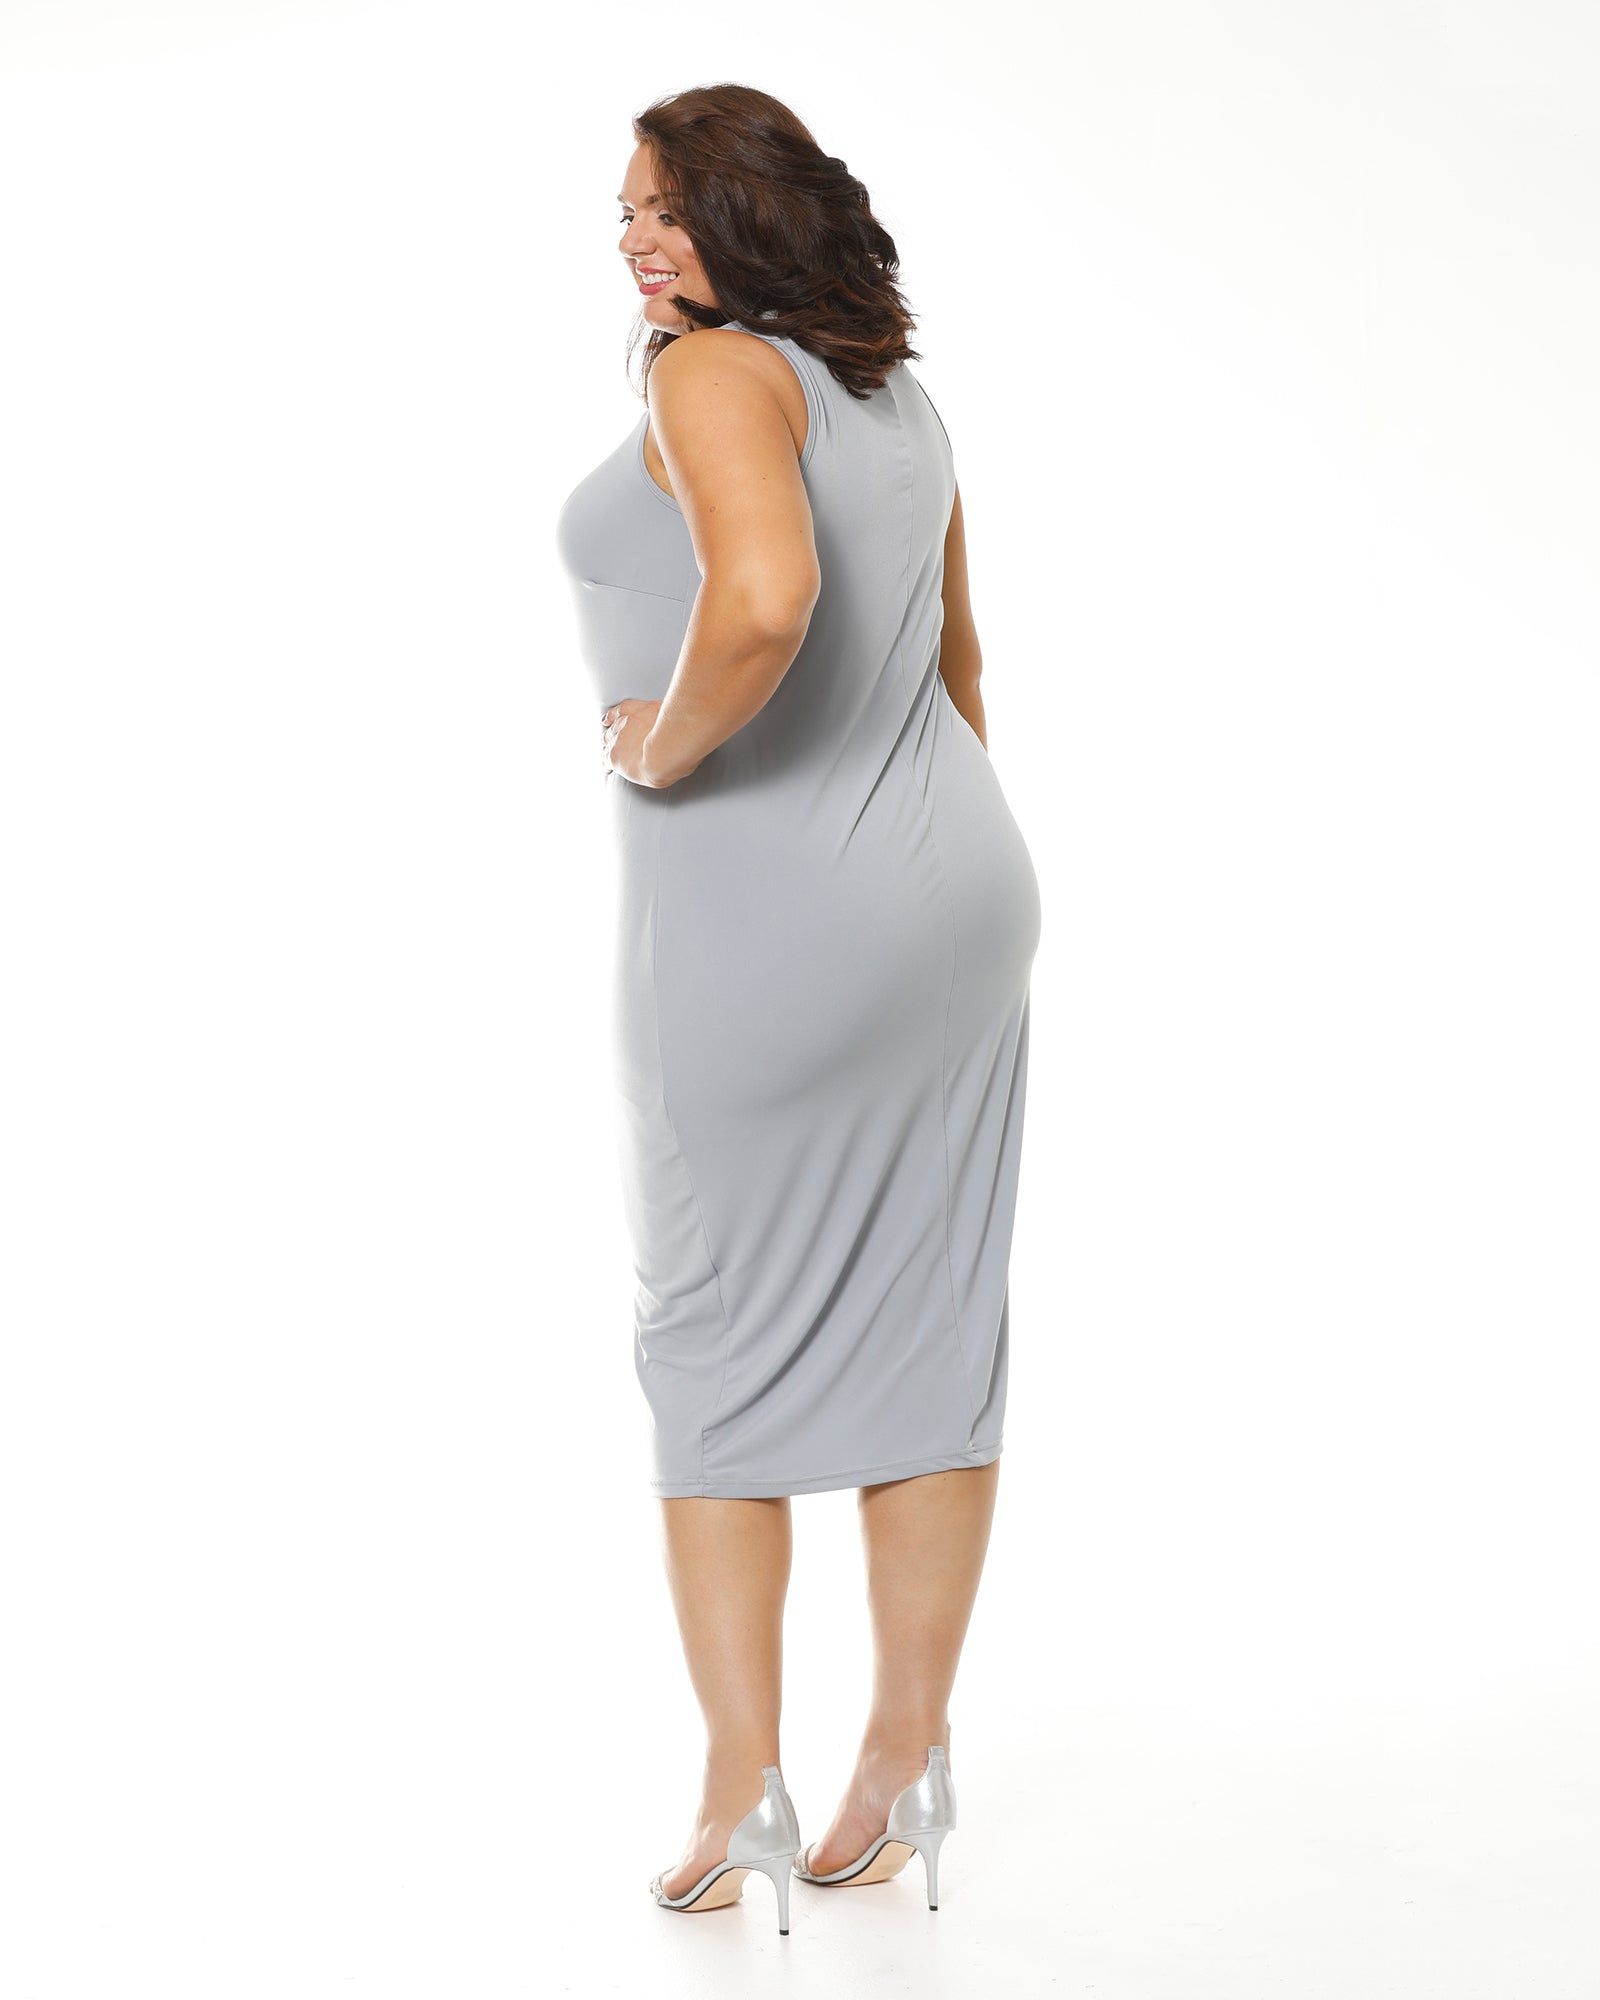 Roxanne Maxi Dress - Silver sizes 14 only